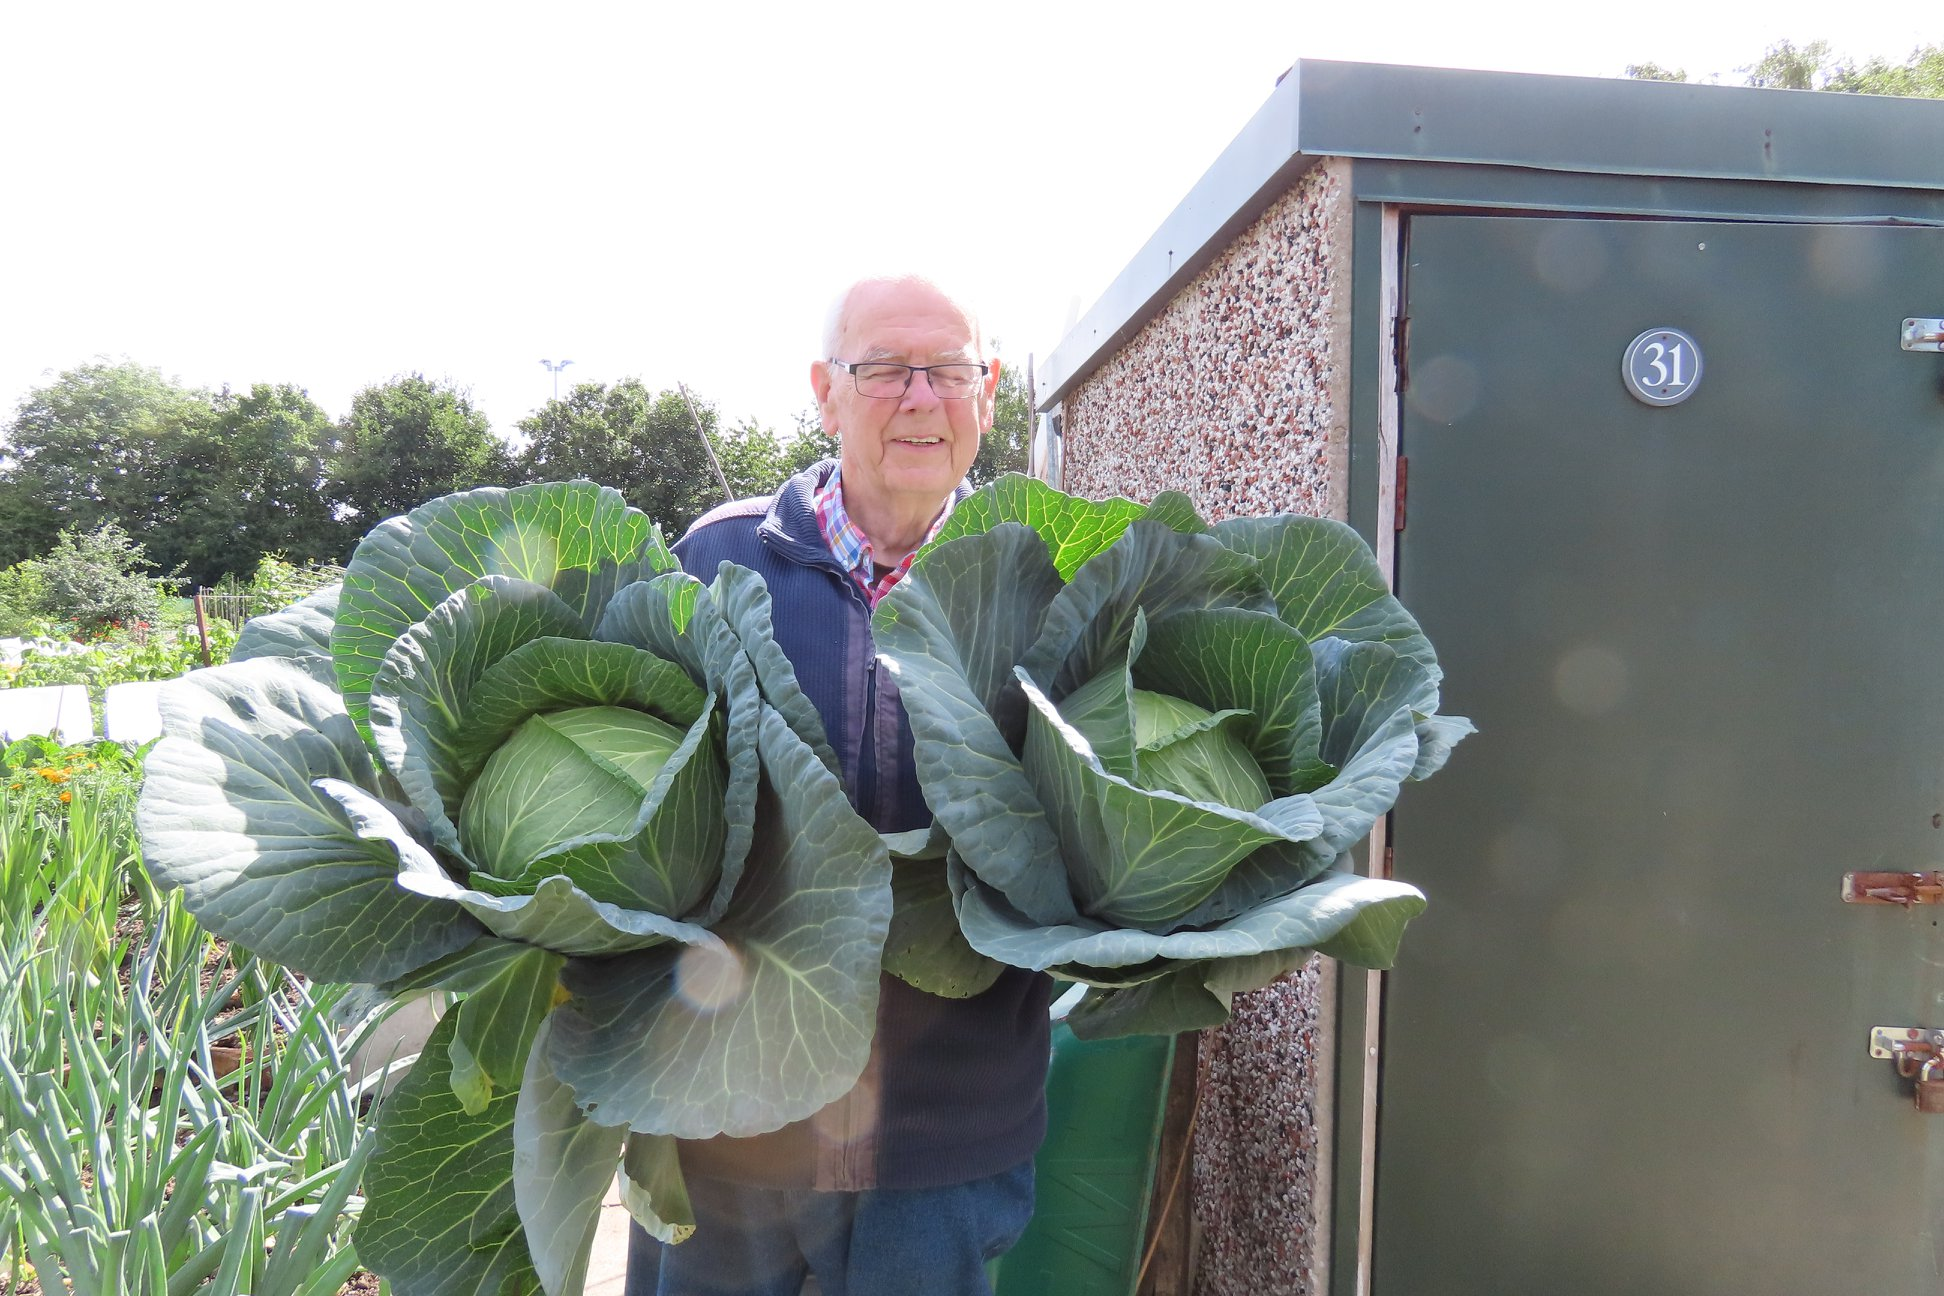 Image curtsey of Sharston Allotment Facebook page and Alan Breeze